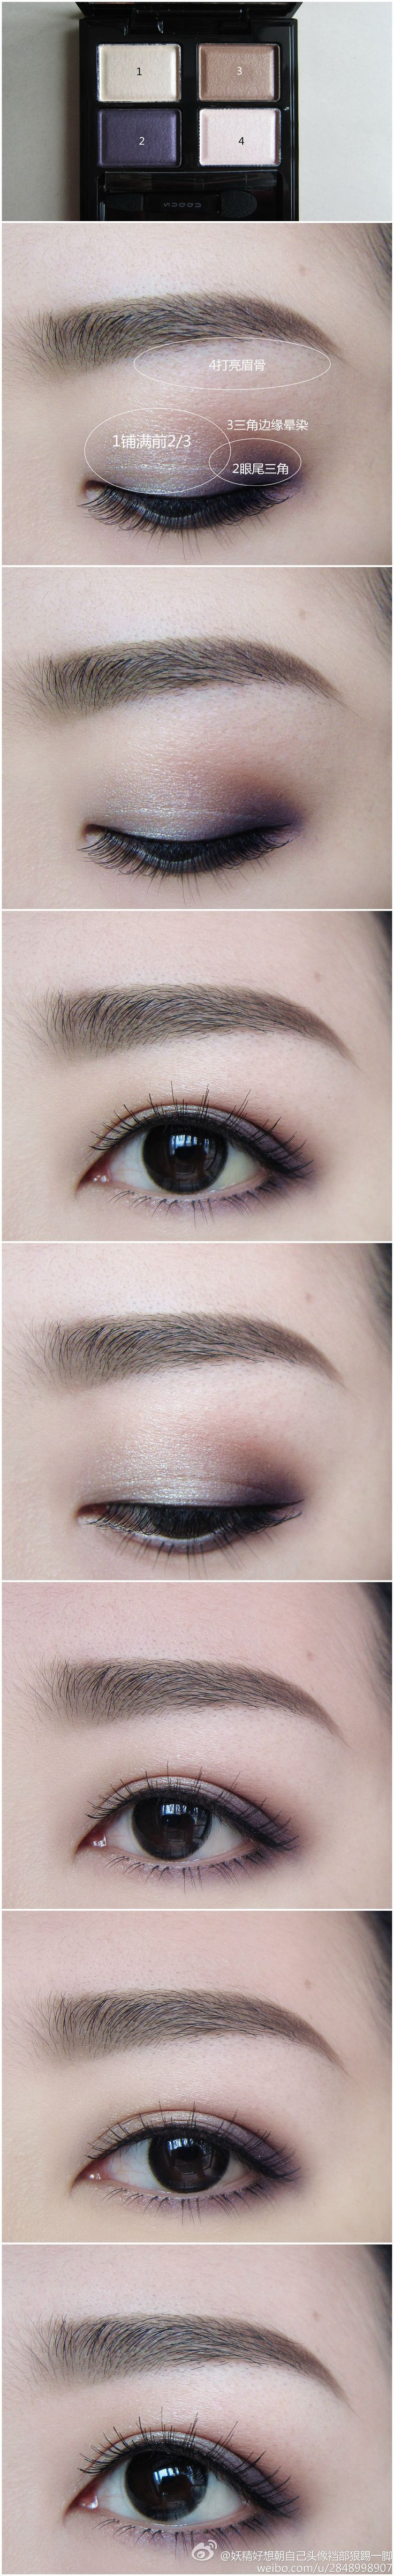 Best Ideas For Makeup Tutorials Show You How To Apply Beautiful